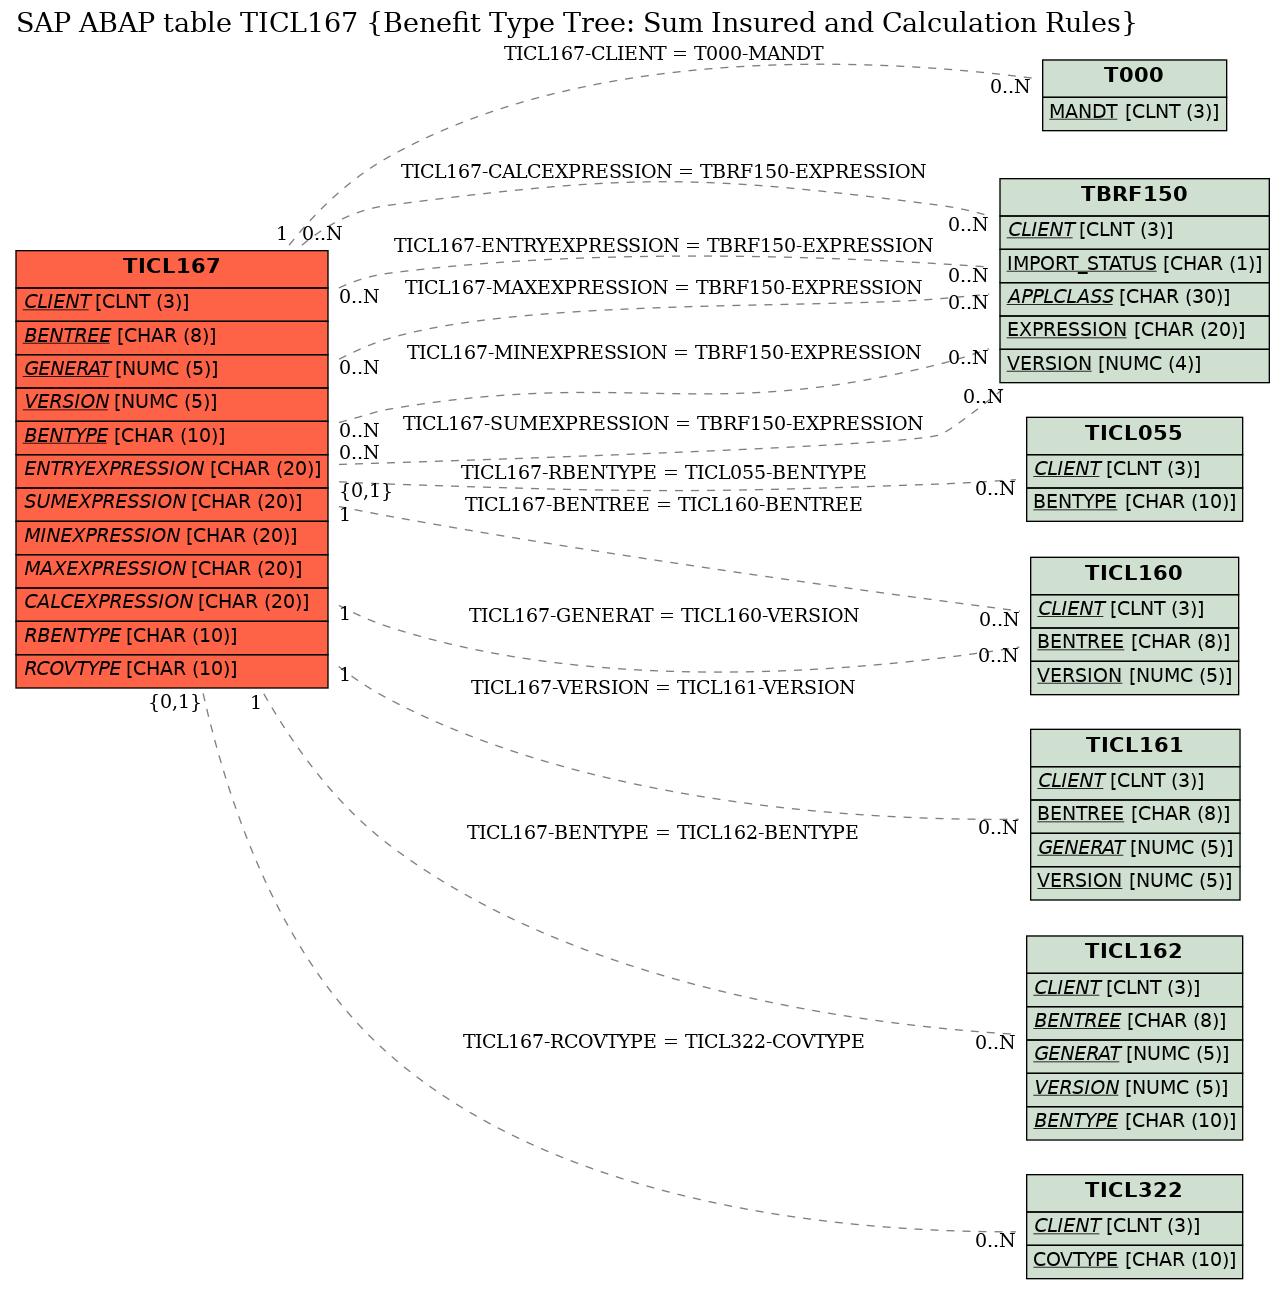 SAP ABAP Table TICL167 (Benefit Type Tree: Sum Insured And